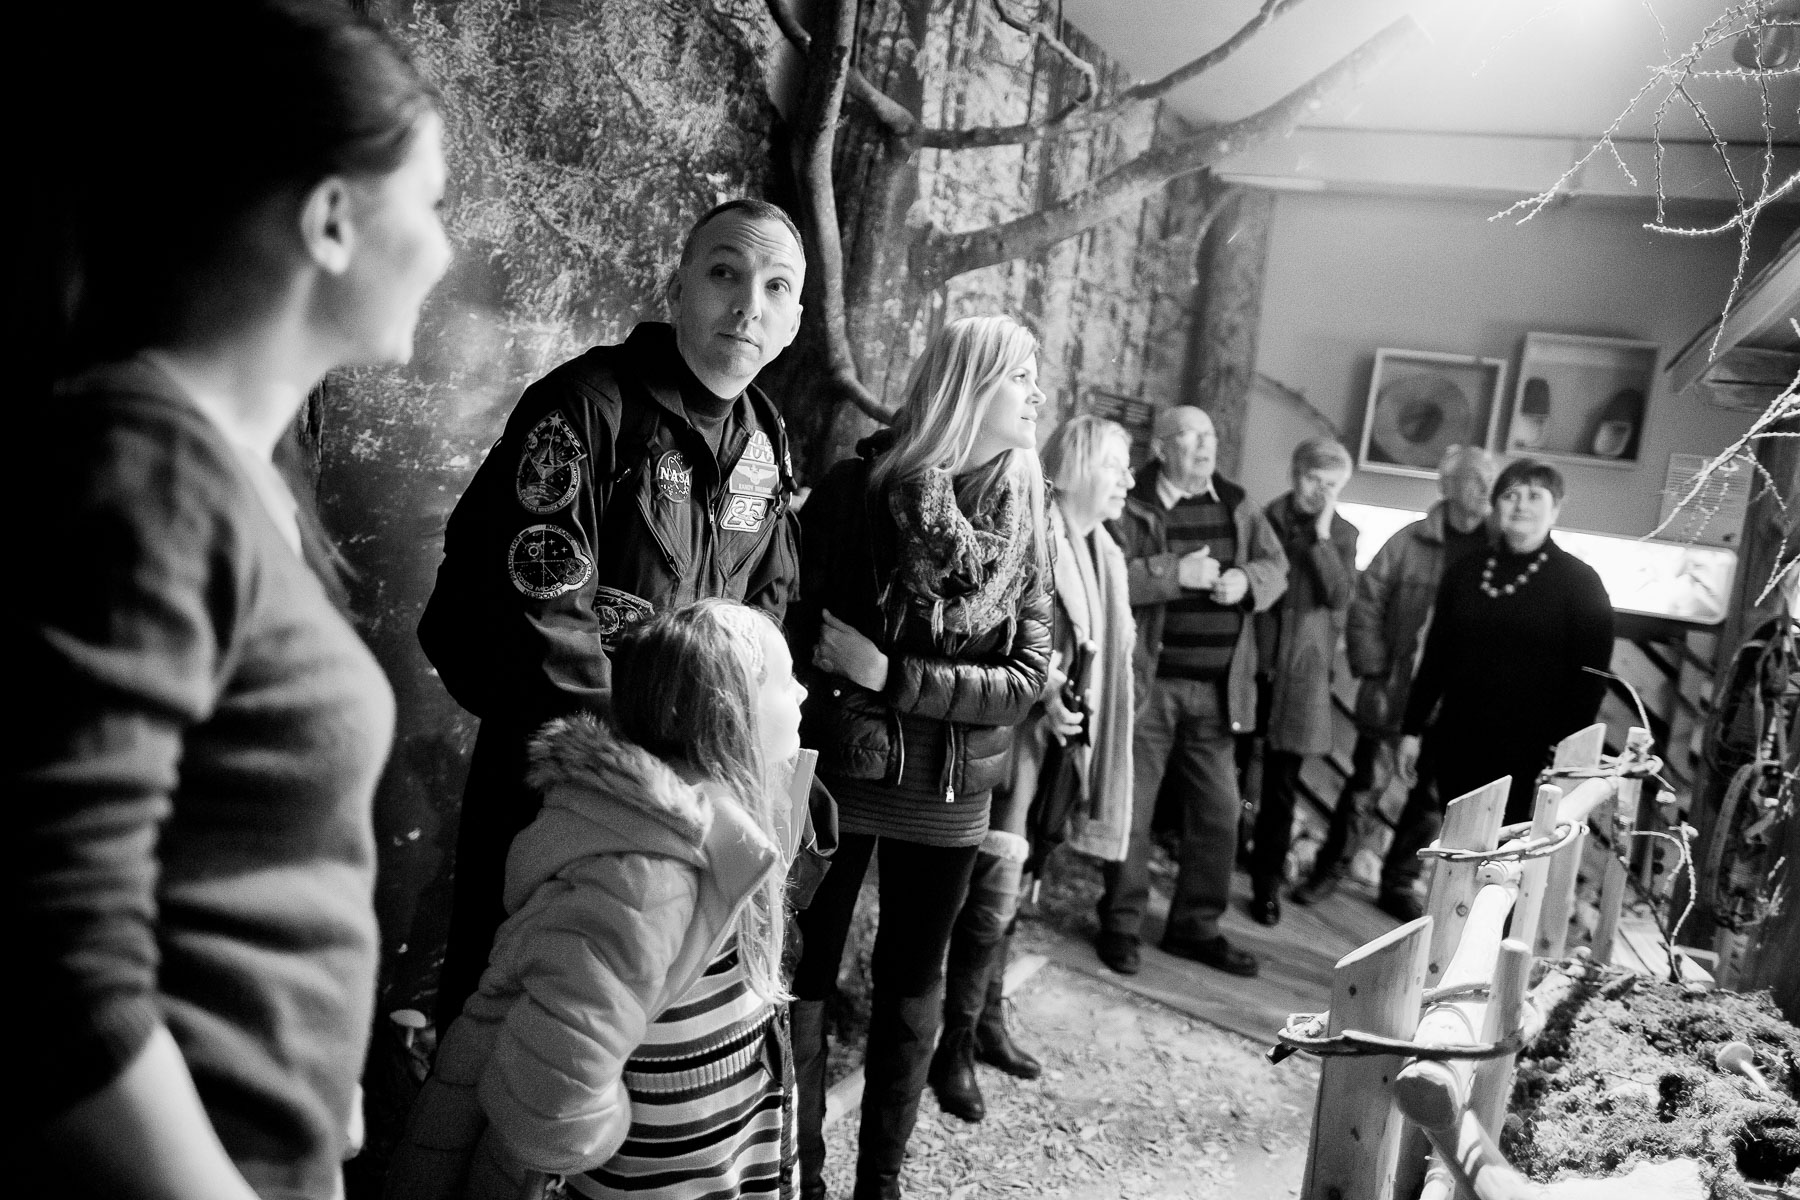 The Bresnik family and their relatives walk through an exhibition at the Rinka tourist information center in Solcava, Slovenia.